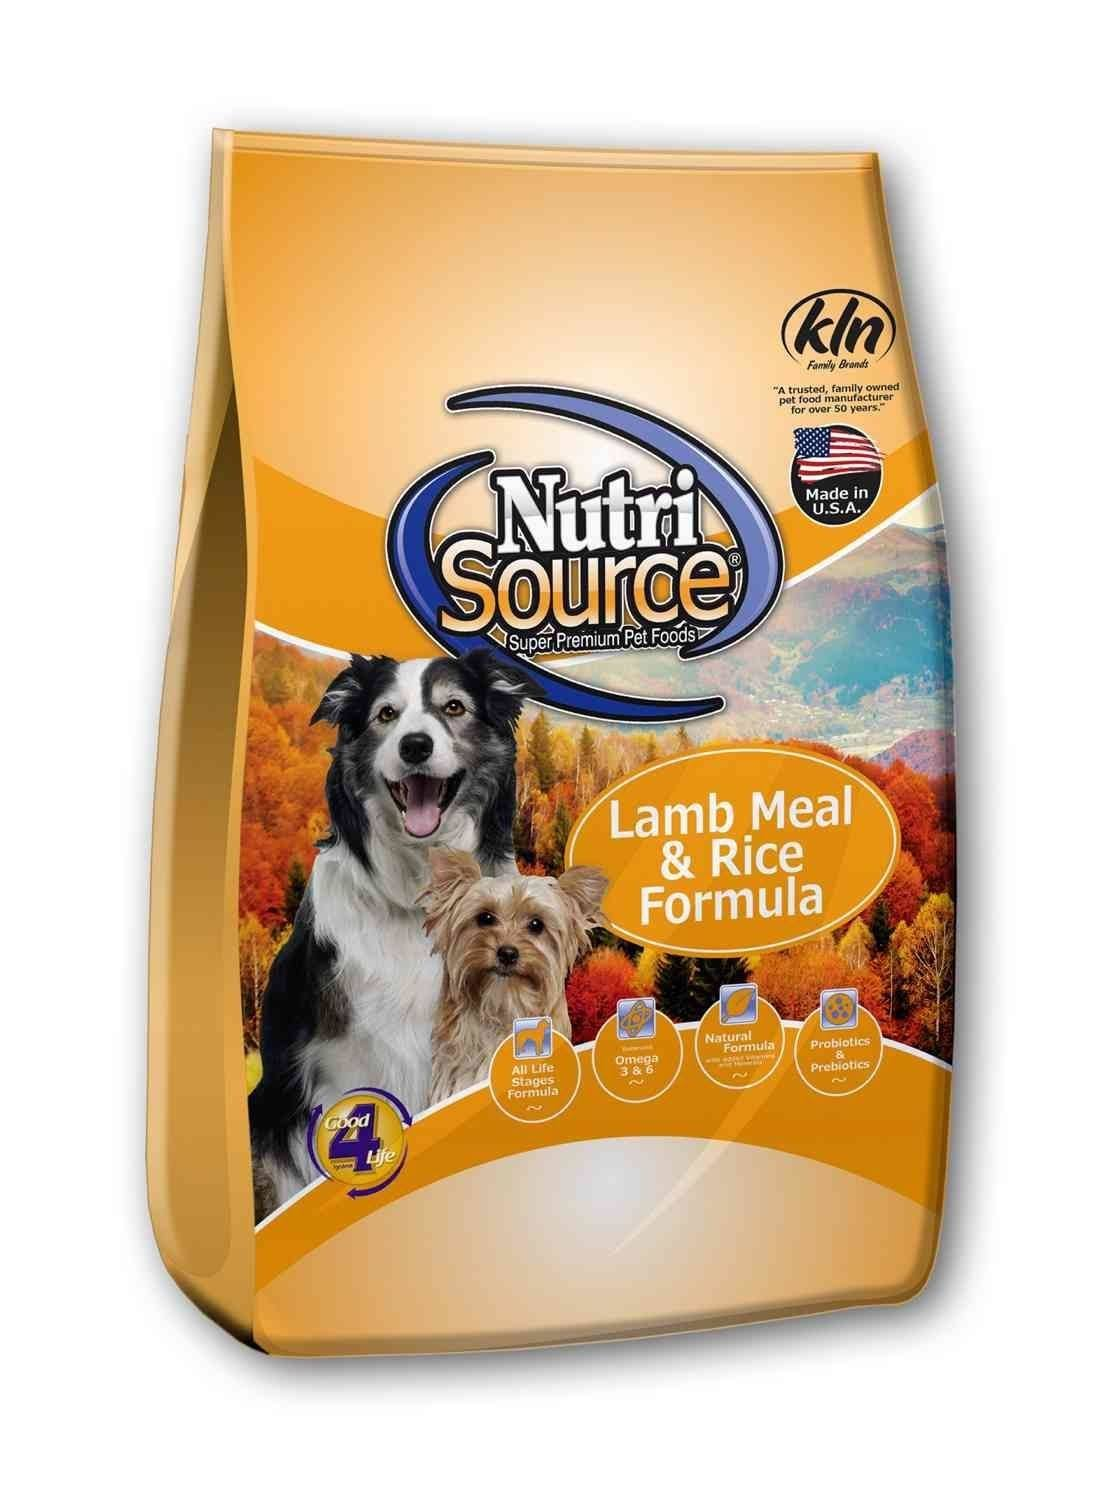 NutriSource Lamb Meal & Rice Formula Dog Food 30 lbs